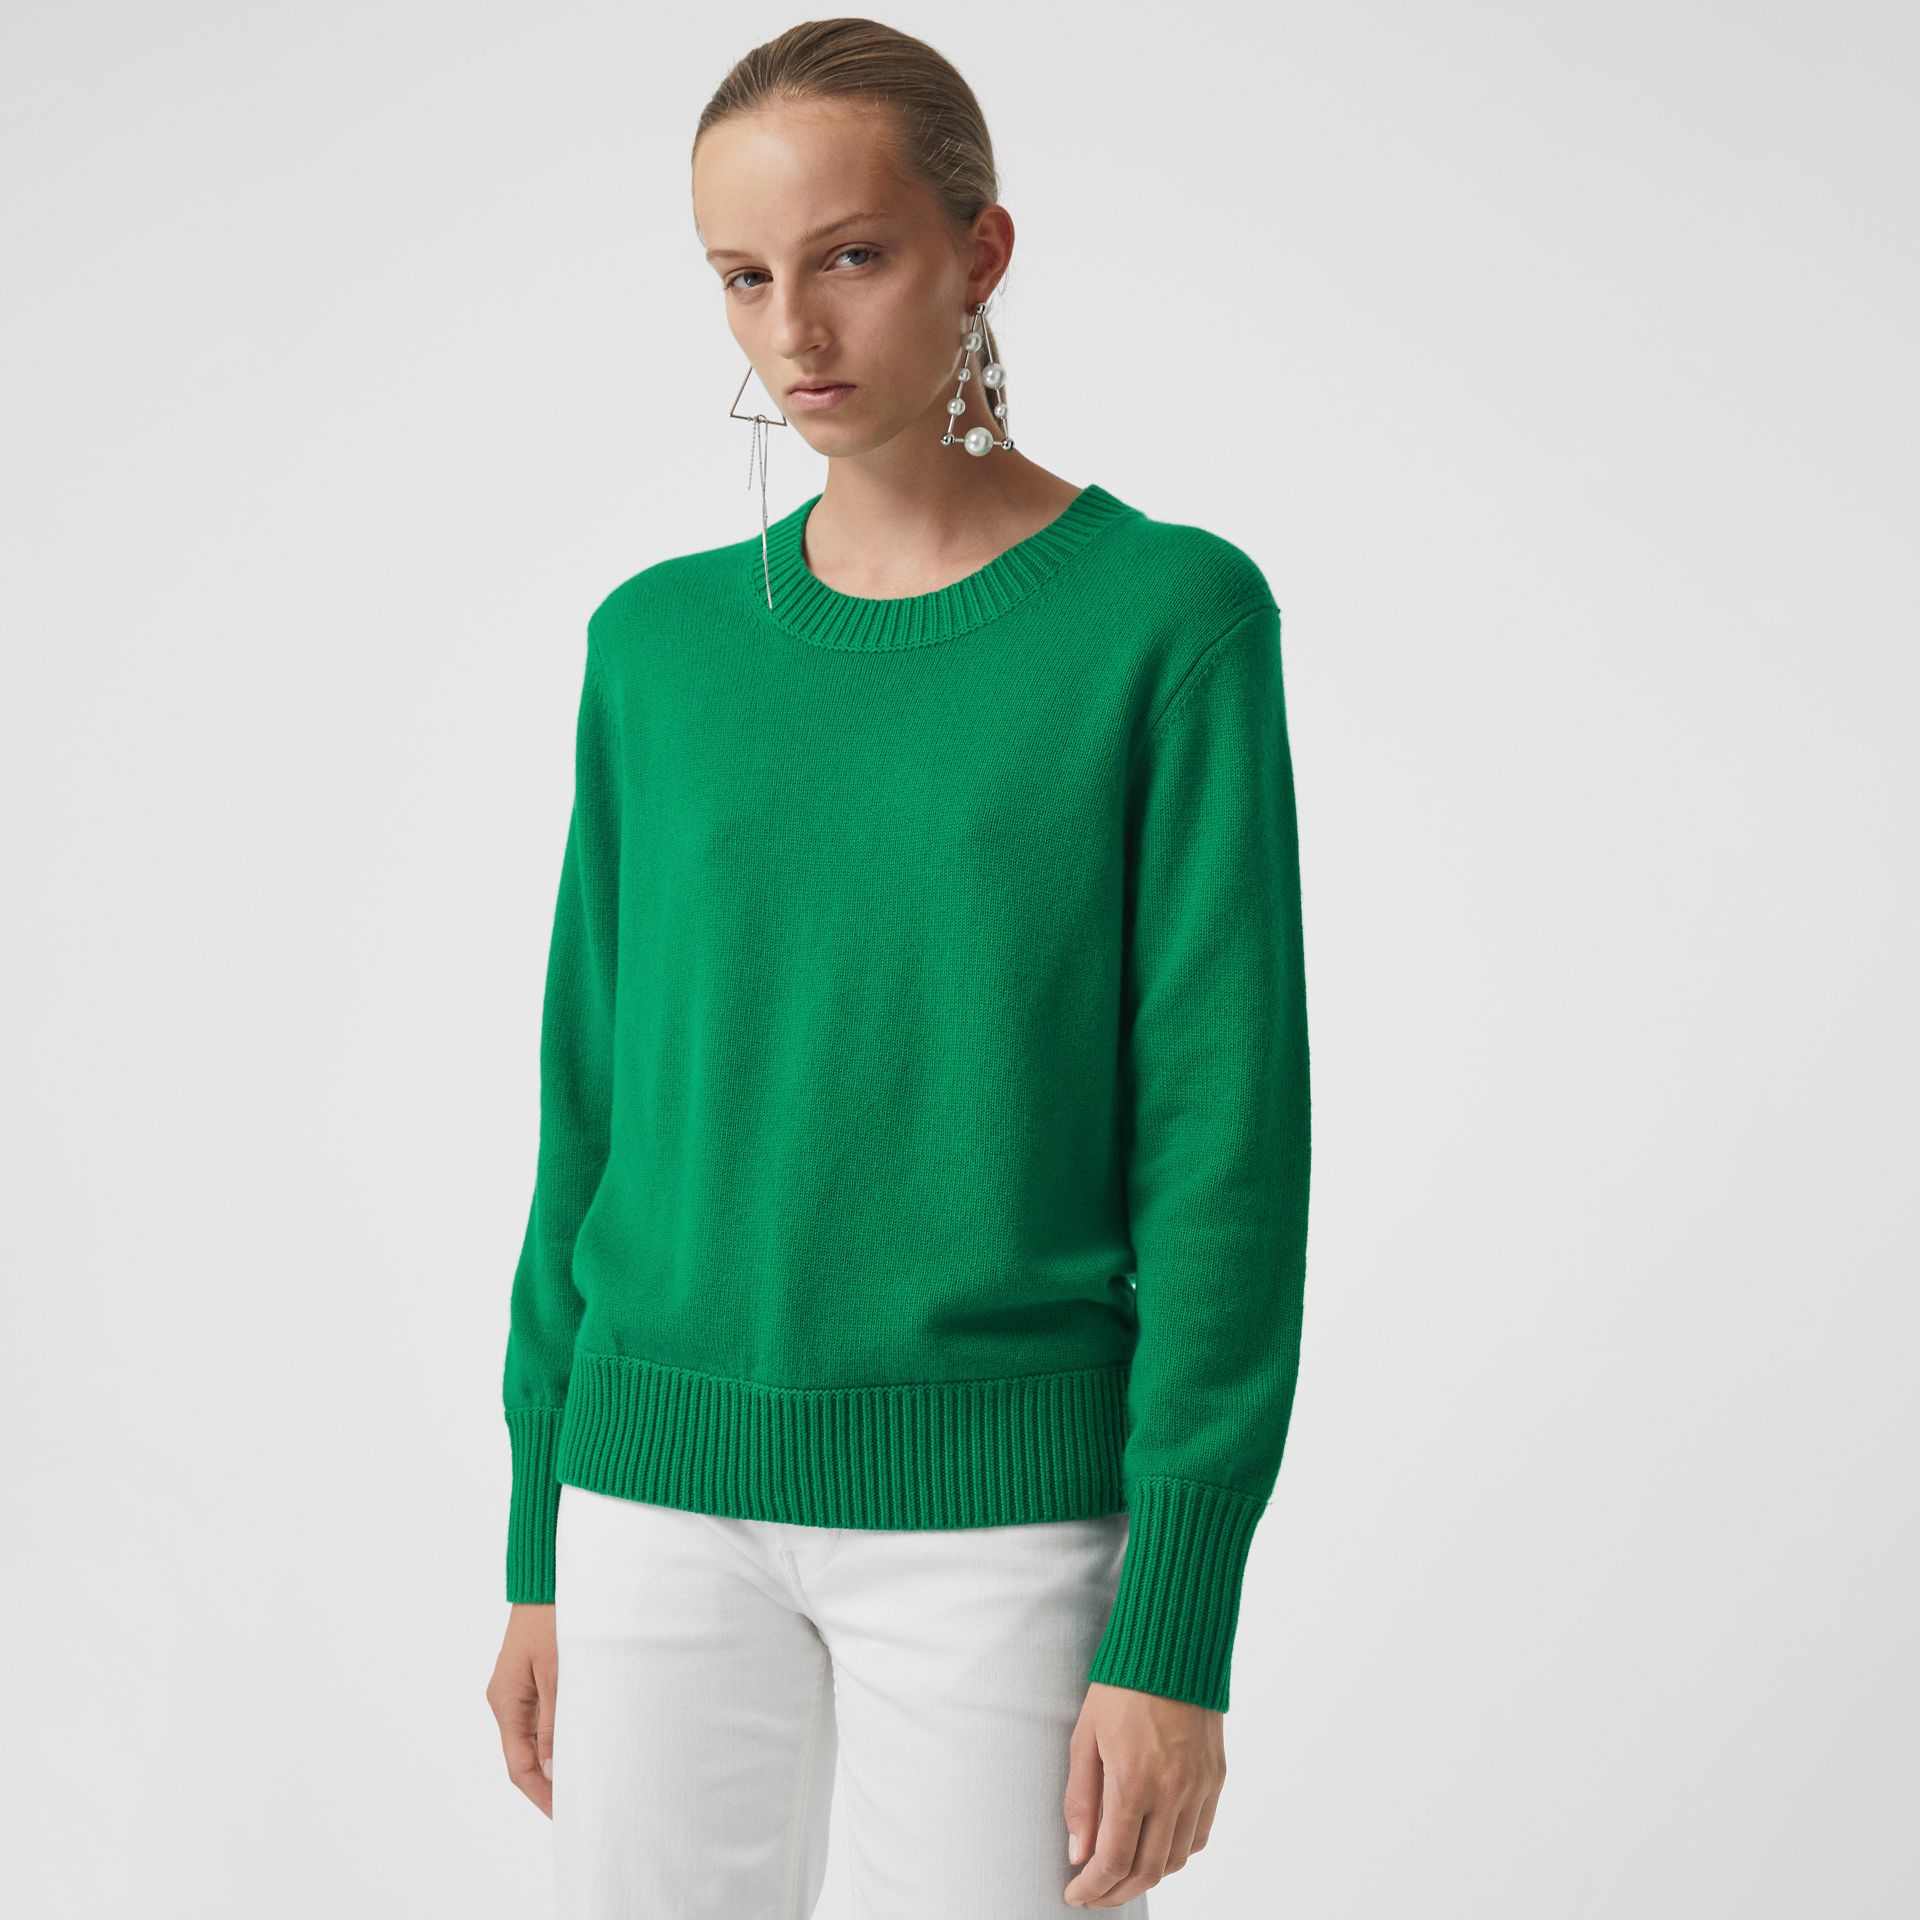 Archive Logo Appliqué Cashmere Sweater in Vibrant Green - Women | Burberry - gallery image 4